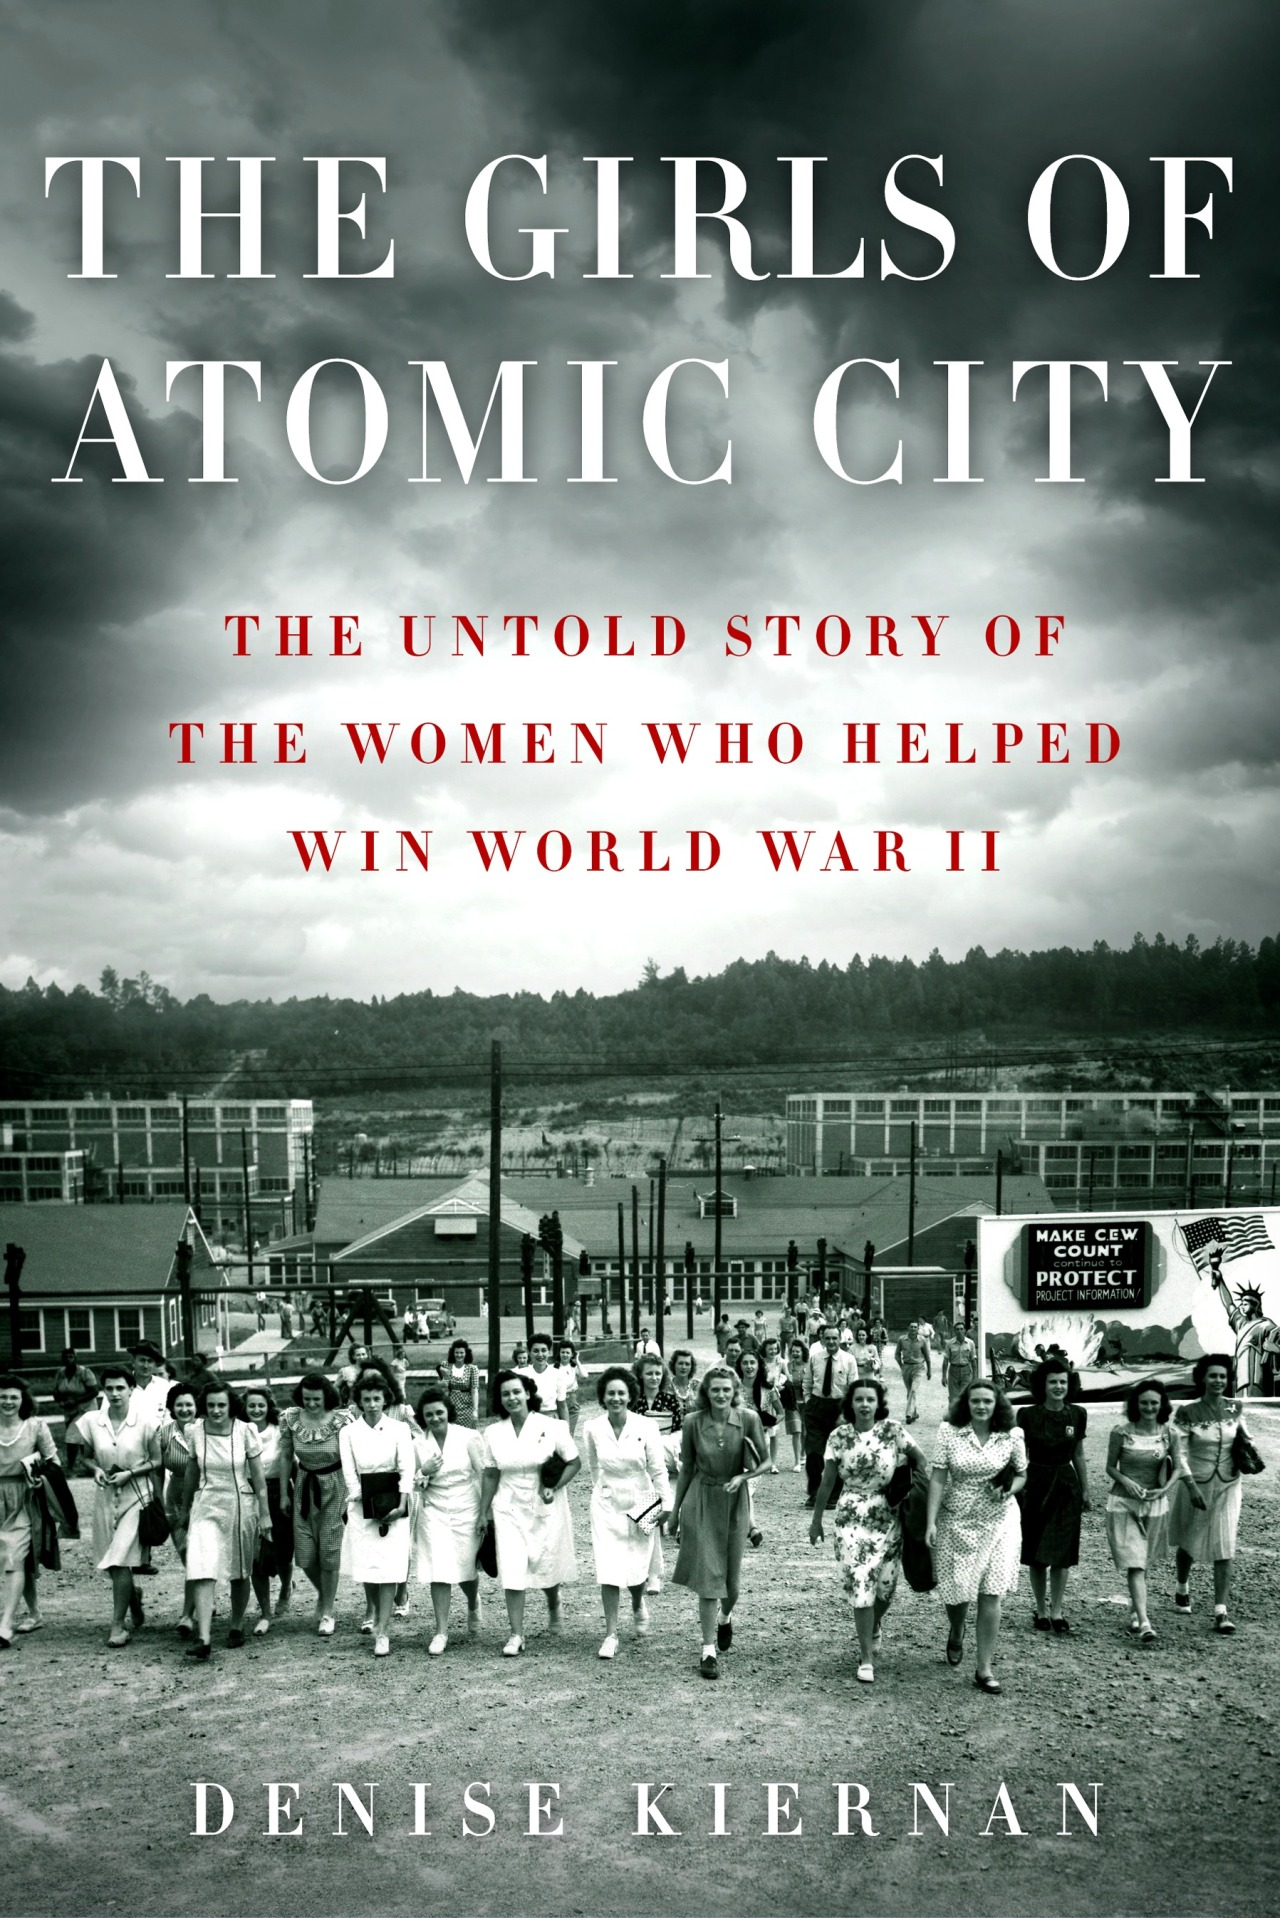 "Some quick news before I'm out the door:   Please listen to   National Public Radio's Weekend Edition   this Sunday, March 3, to hear my wife Denise Kiernan talk about her new book,   The Girls of Atomic City  . The book pubs next Tuesday, and it's pretty much all this house is thinking about right now. Denise will be talking with two of the ladies in the book, still spry at about 90 years old for each of them.   I'll post a link to the interview as soon as NPR puts one up.   In other news:   * It was a good week writing-wise for me. Managed to place two more short stories, which were sent out deep in the heart of 2012. I'll let you know when they're out. Maybe I  am  getting the hang of this fiction business after all. I'm happy with the progress on my current book, though my last ( The Marshal of the Borgo ) has been delayed because I've been busy with client work and doing some promo for Denise's book.   * At least three of the ghostwriting projects I've been involved with this year and last are all coming out this spring. Two in late April, one in mid-May. That's three excited authors we're teaching one of two things about promotion. (""The links to your book should be on your website."" ""You don't think it's a bit much?"")"